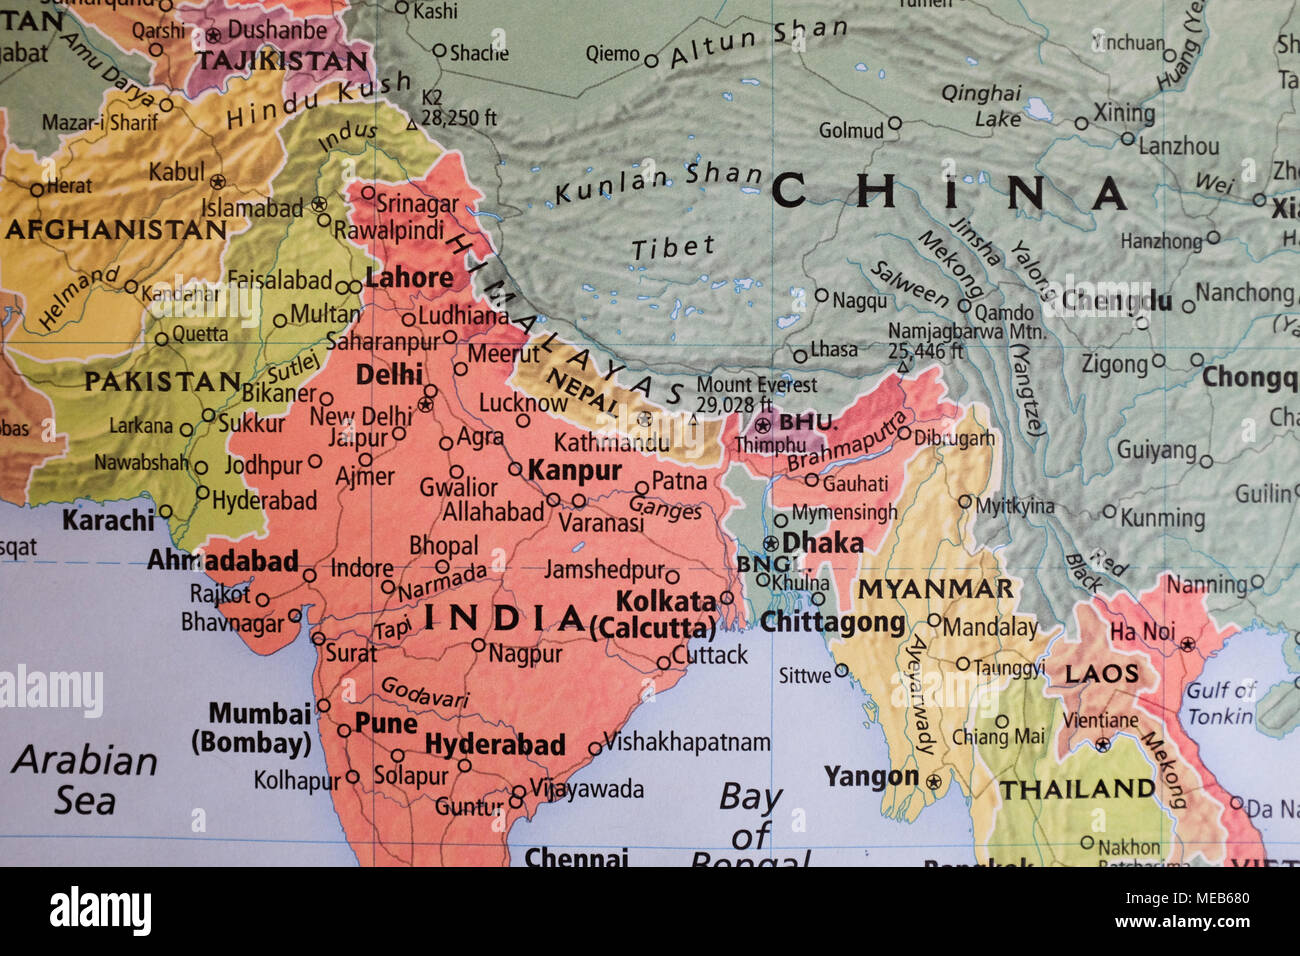 Map Of China And India Stock Photos & Map Of China And India Stock ...